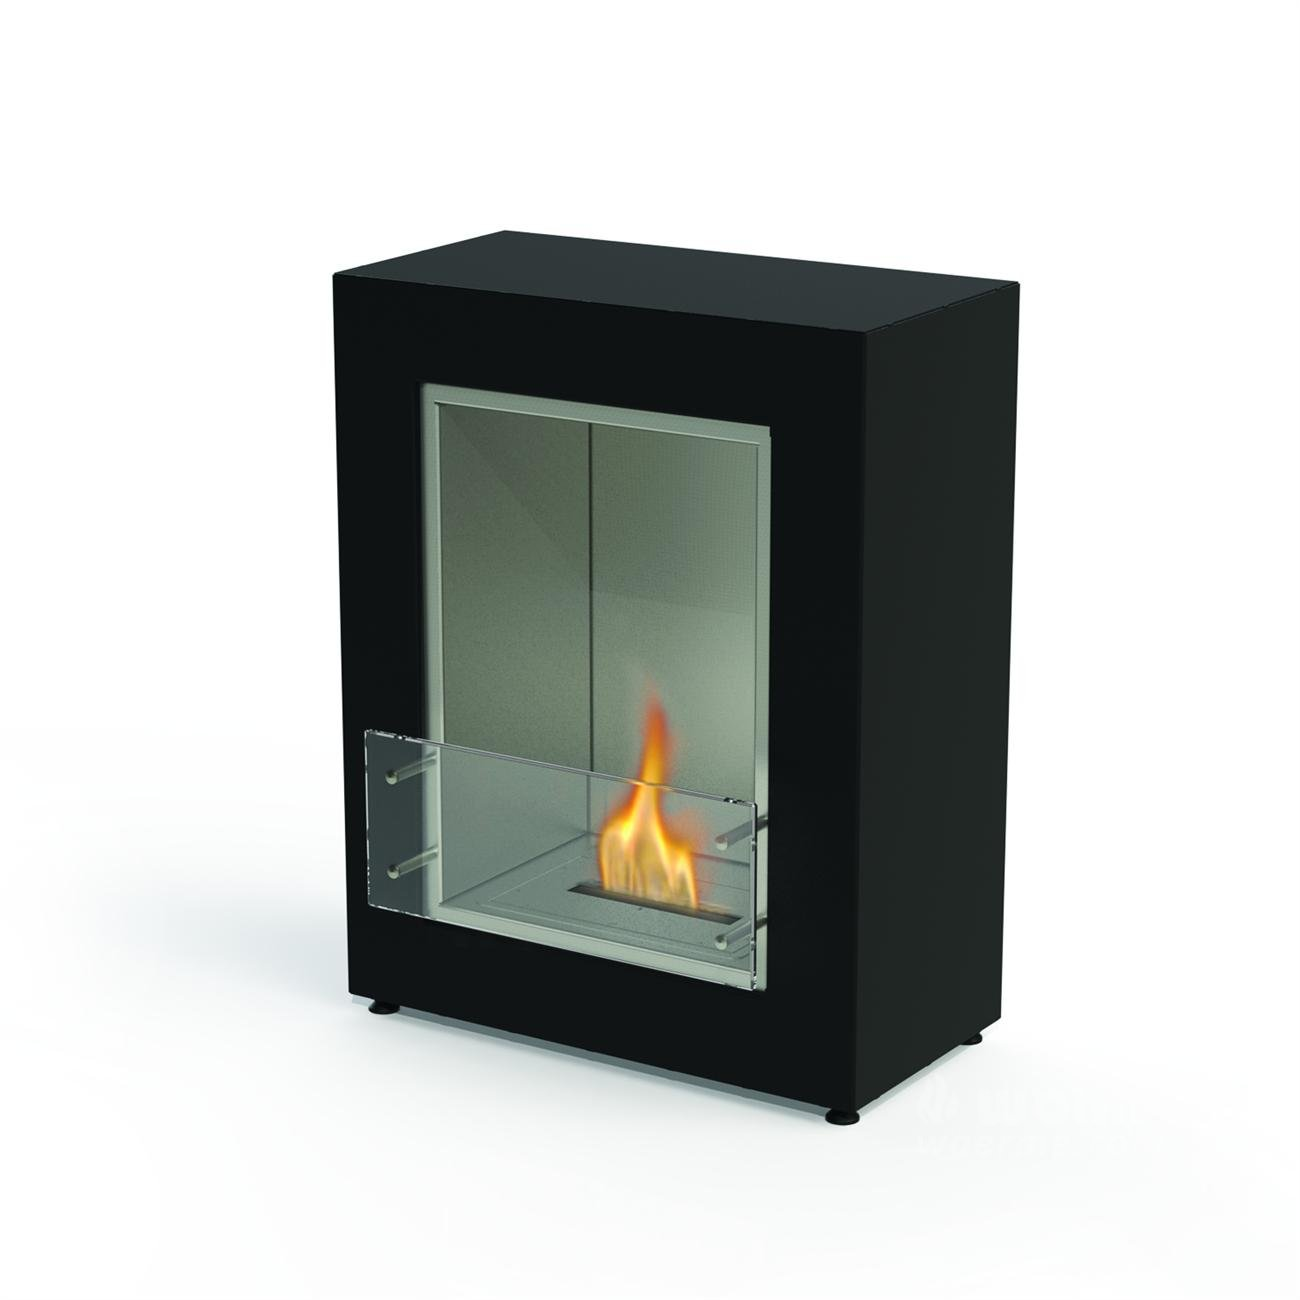 design bioethanol kamin glammfire muble. Black Bedroom Furniture Sets. Home Design Ideas